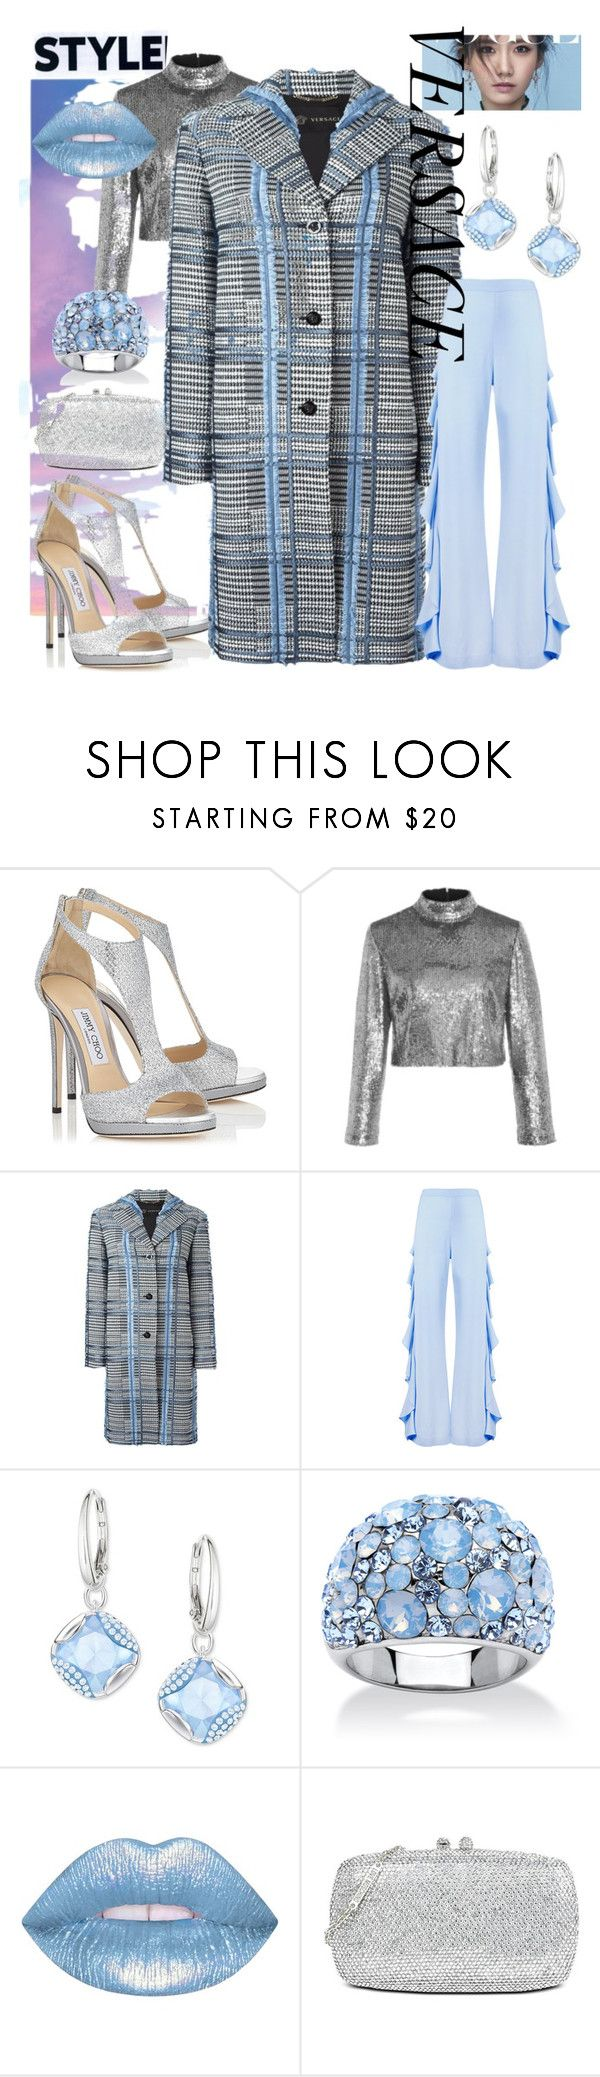 """""""Style in a VERSACE Coat"""" by mdfletch ❤ liked on Polyvore featuring Jimmy Choo, A.L.C., Versace, Sara Battaglia, Swarovski, Palm Beach Jewelry, Lime Crime, Love Moschino and versacecoat"""